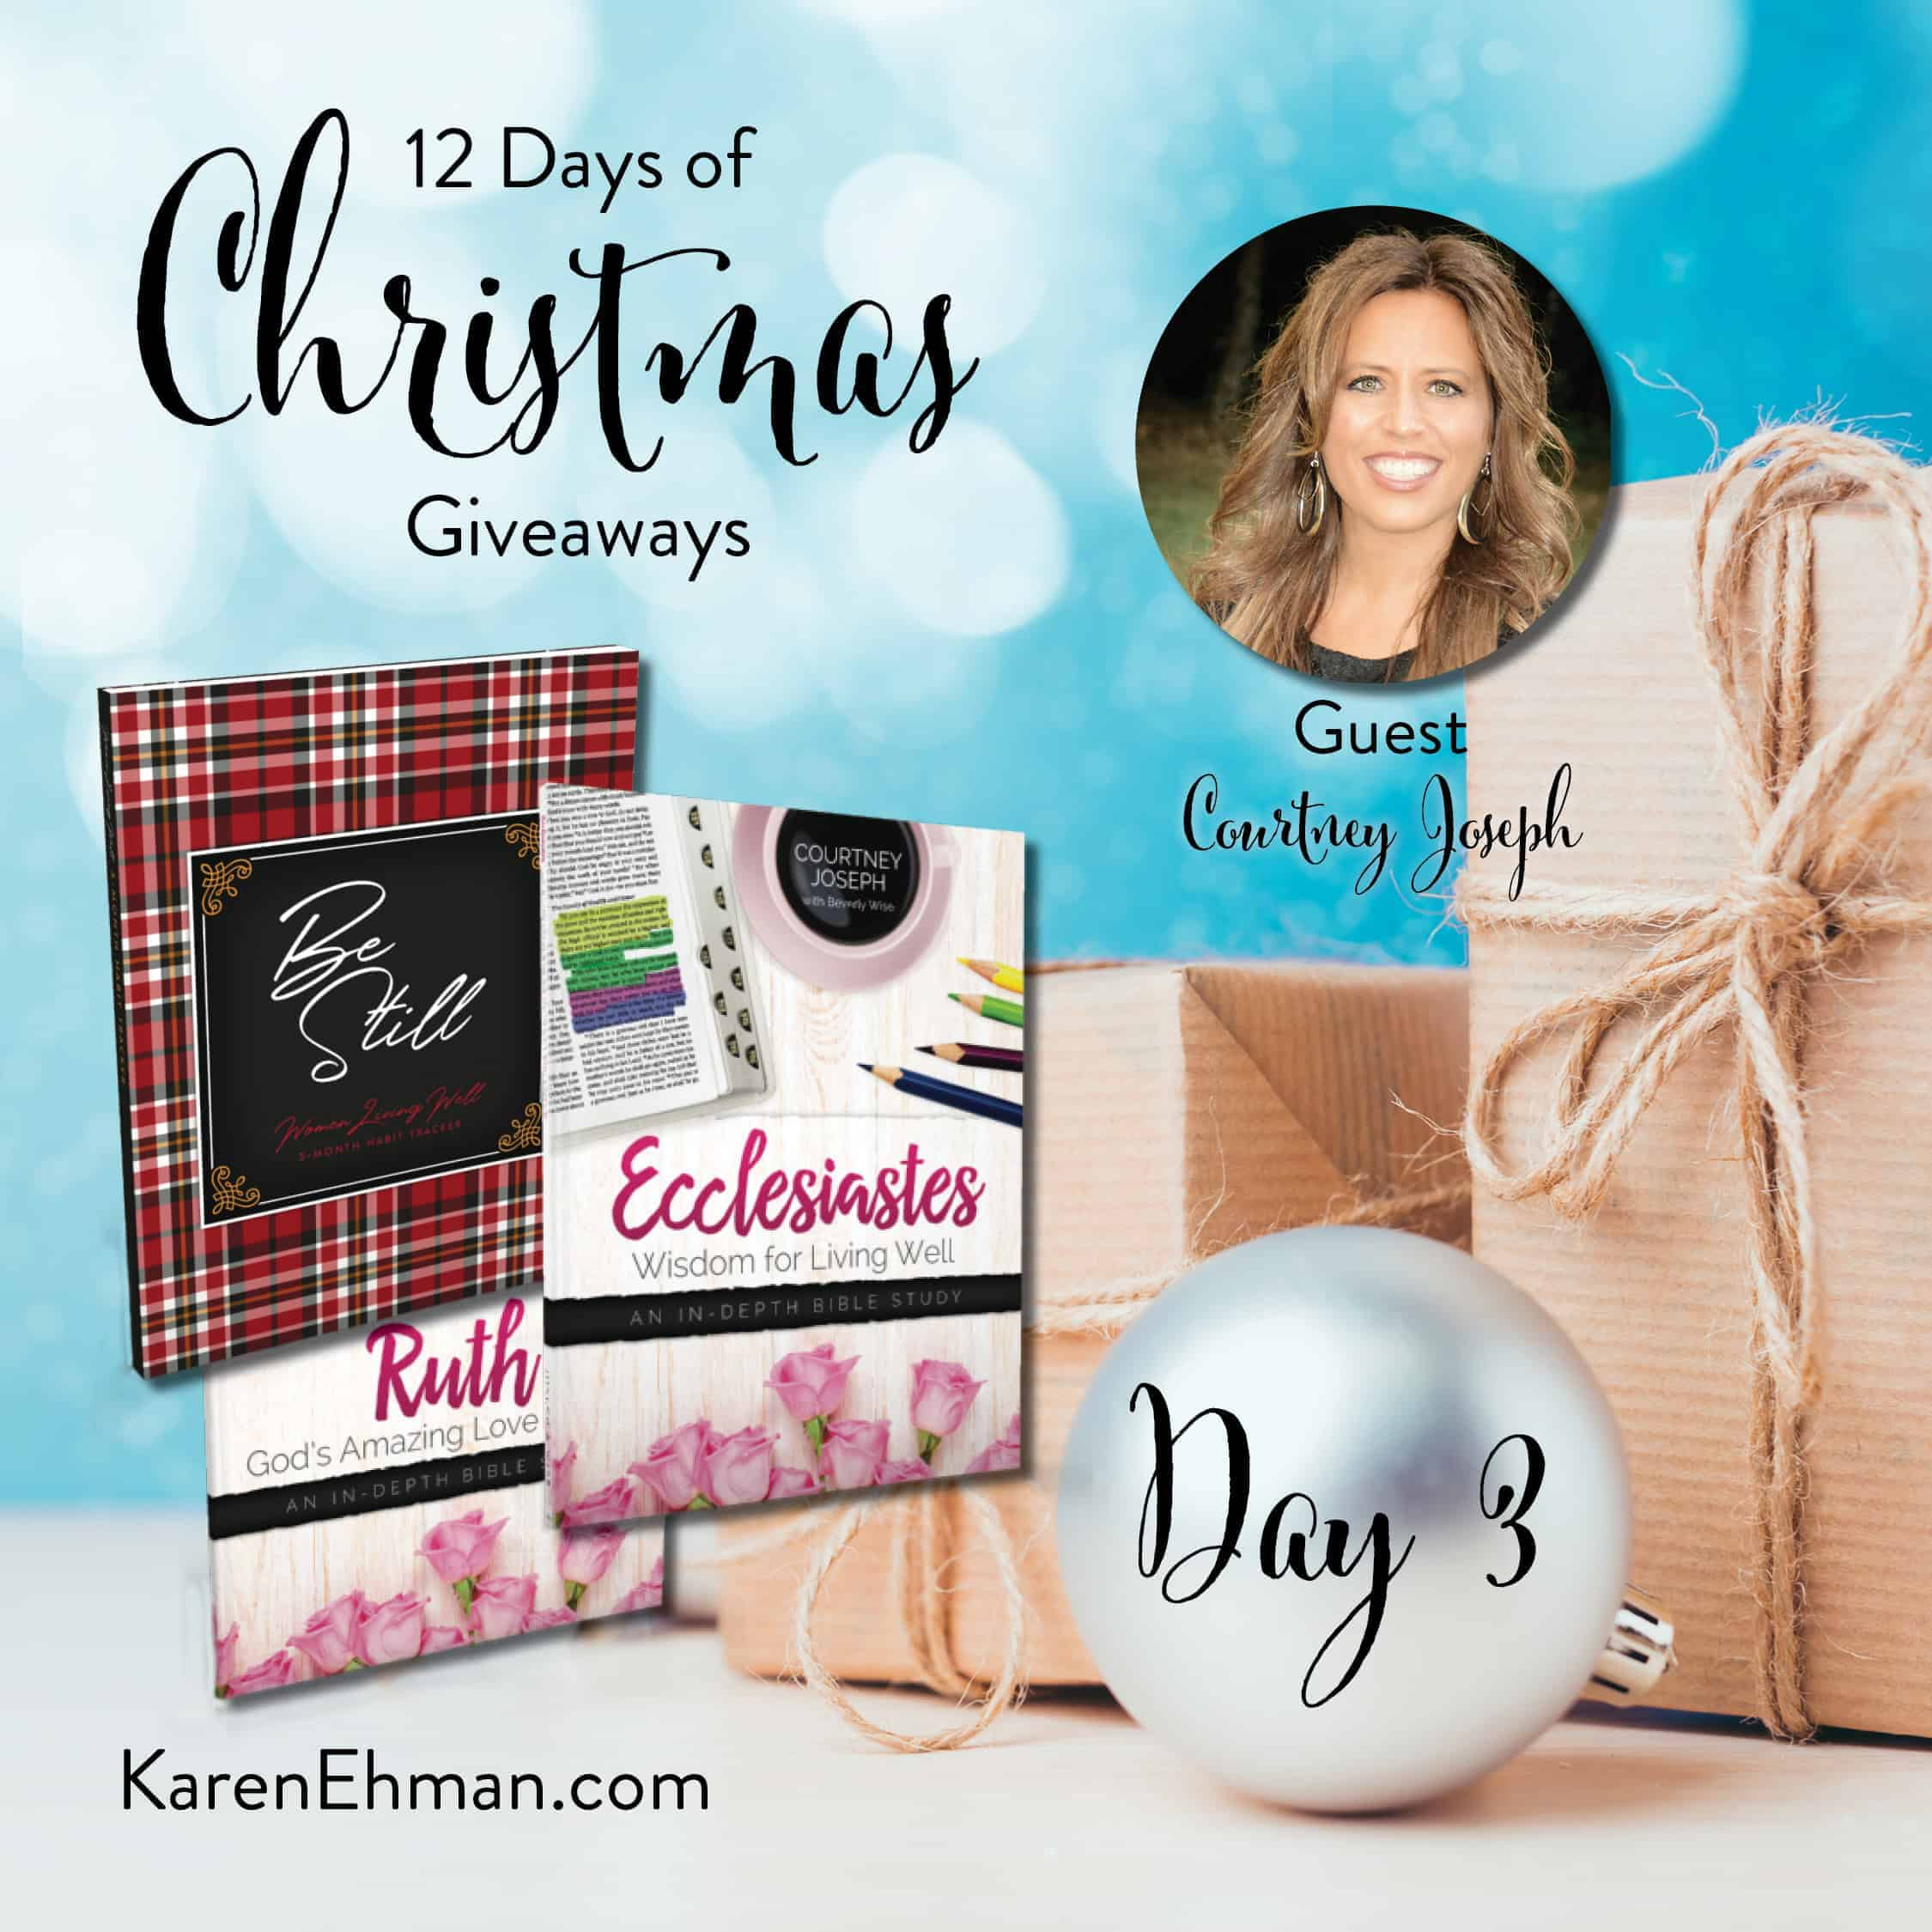 Day 3 of 12 Days of Christmas Giveaways (with Courtney Joseph)